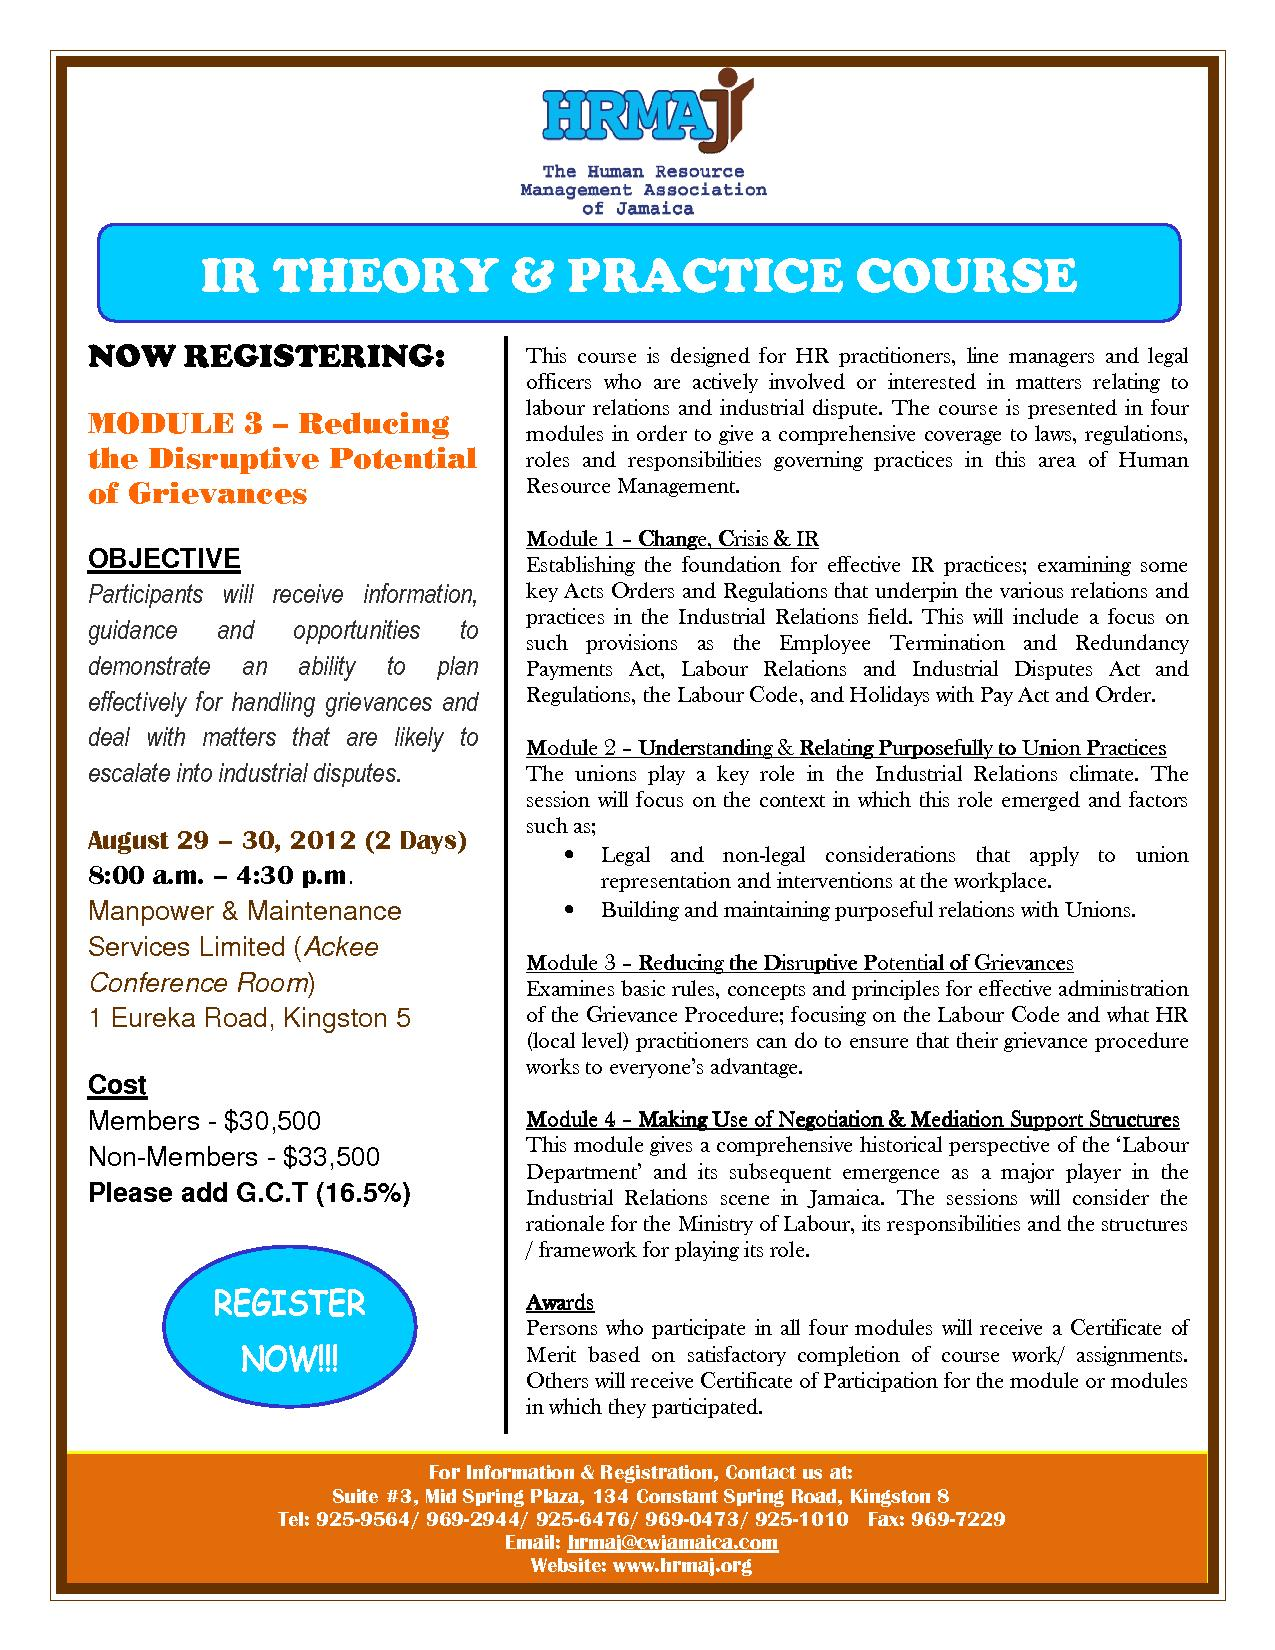 IR Theory Practice Course Flyer (Module 3)